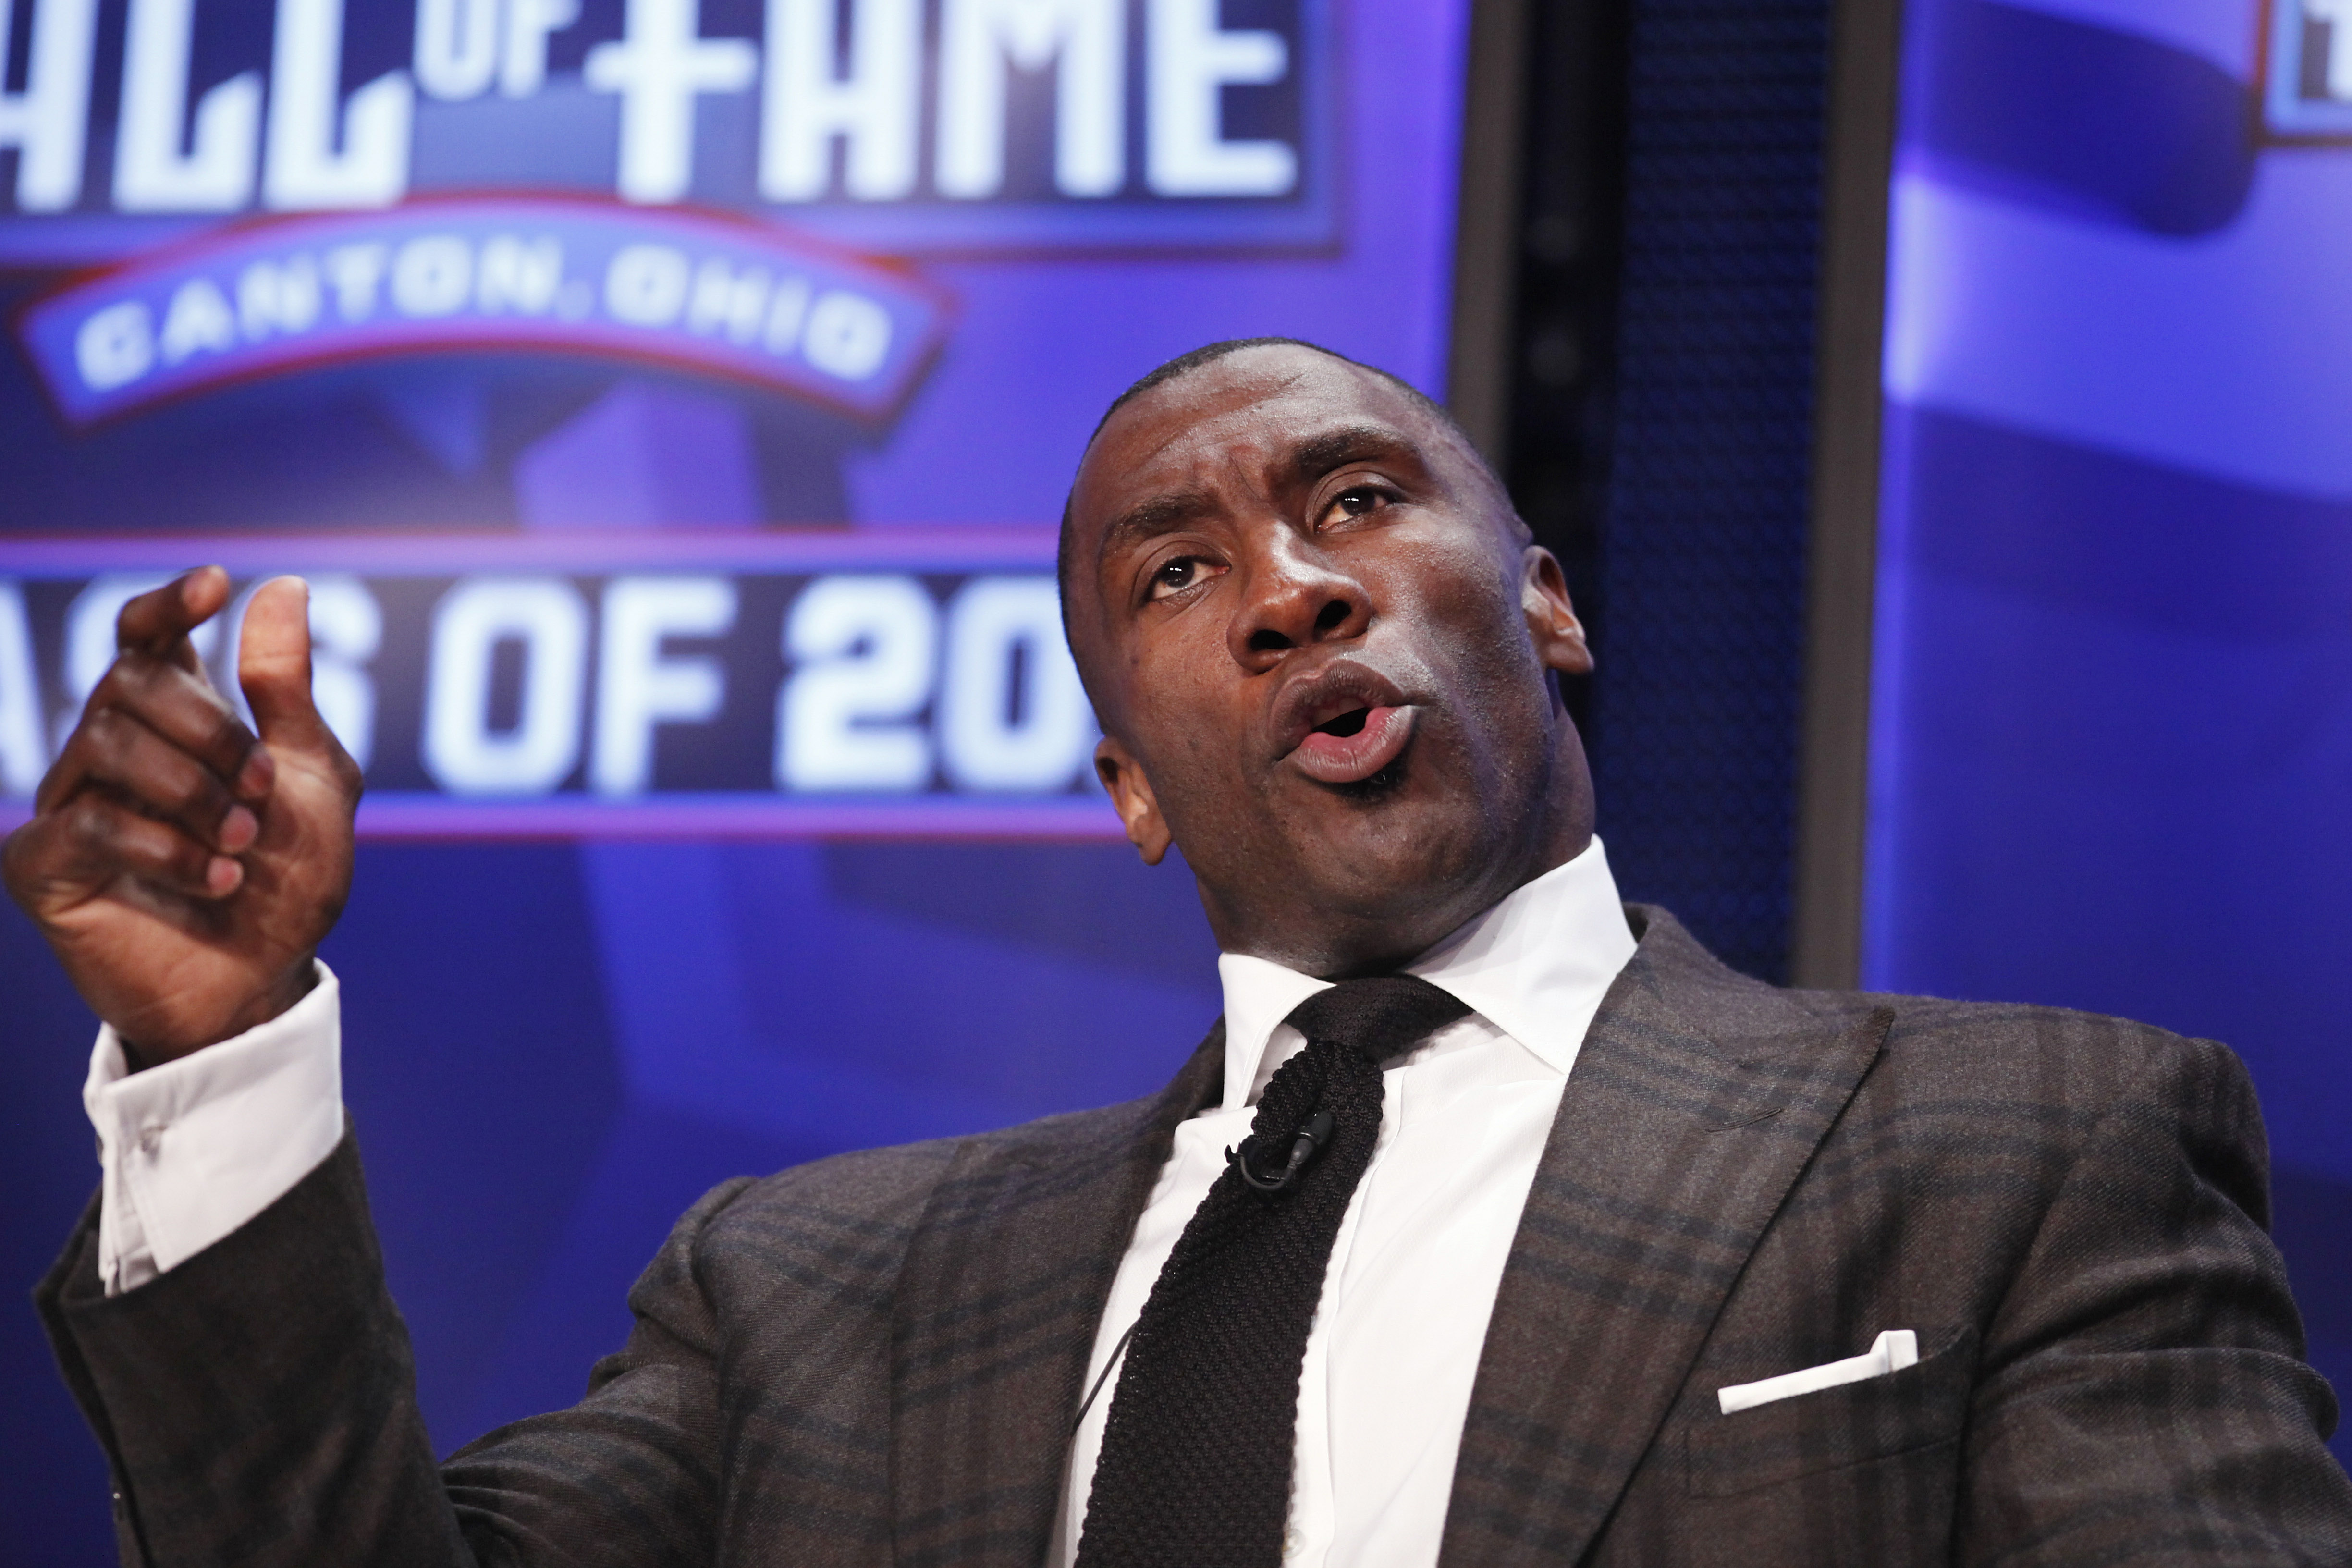 DALLAS, TX - FEBRUARY 5: Shannon Sharpe looks on after being inducted into the 2011 Pro Football Hall of Fame class during an announcement at the Super Bowl XLV media center on February 5, 2011 in Dallas, Texas. (Photo by Joe Robbins/Getty Images)